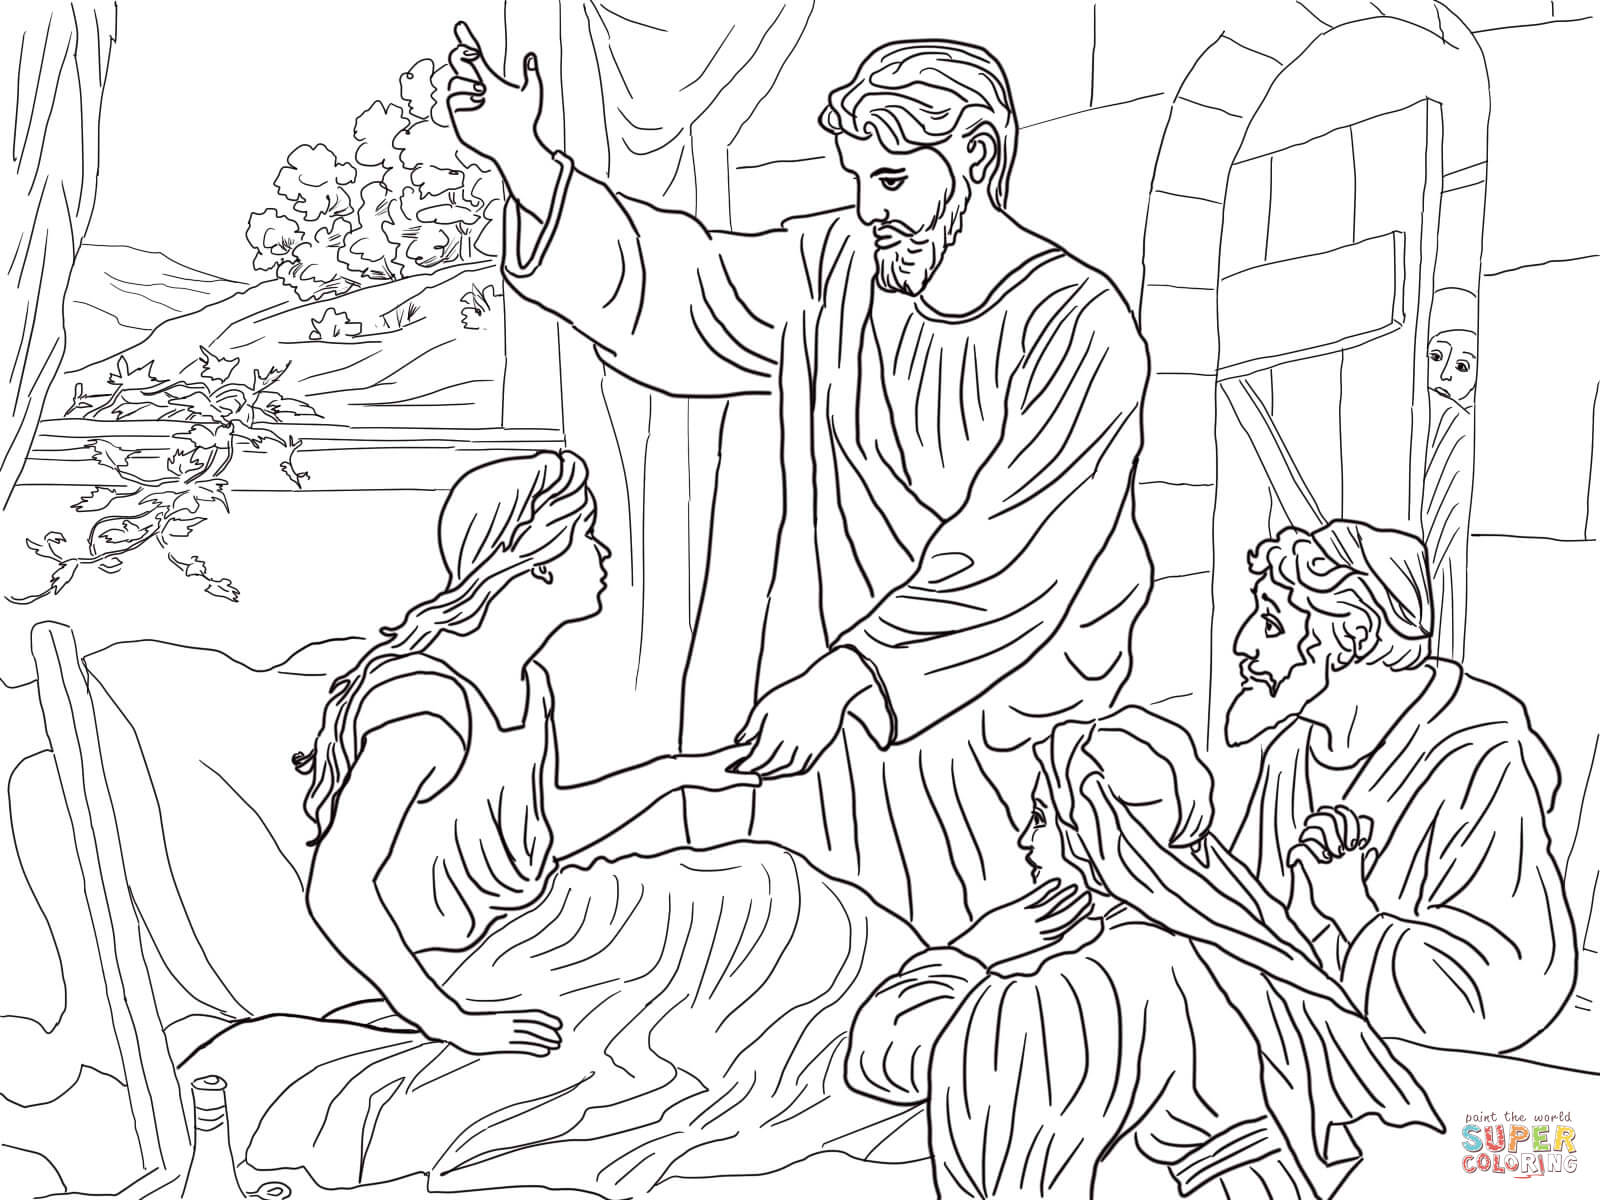 Jesus Raises Lazarus from the Dead coloring page | Free Printable ...